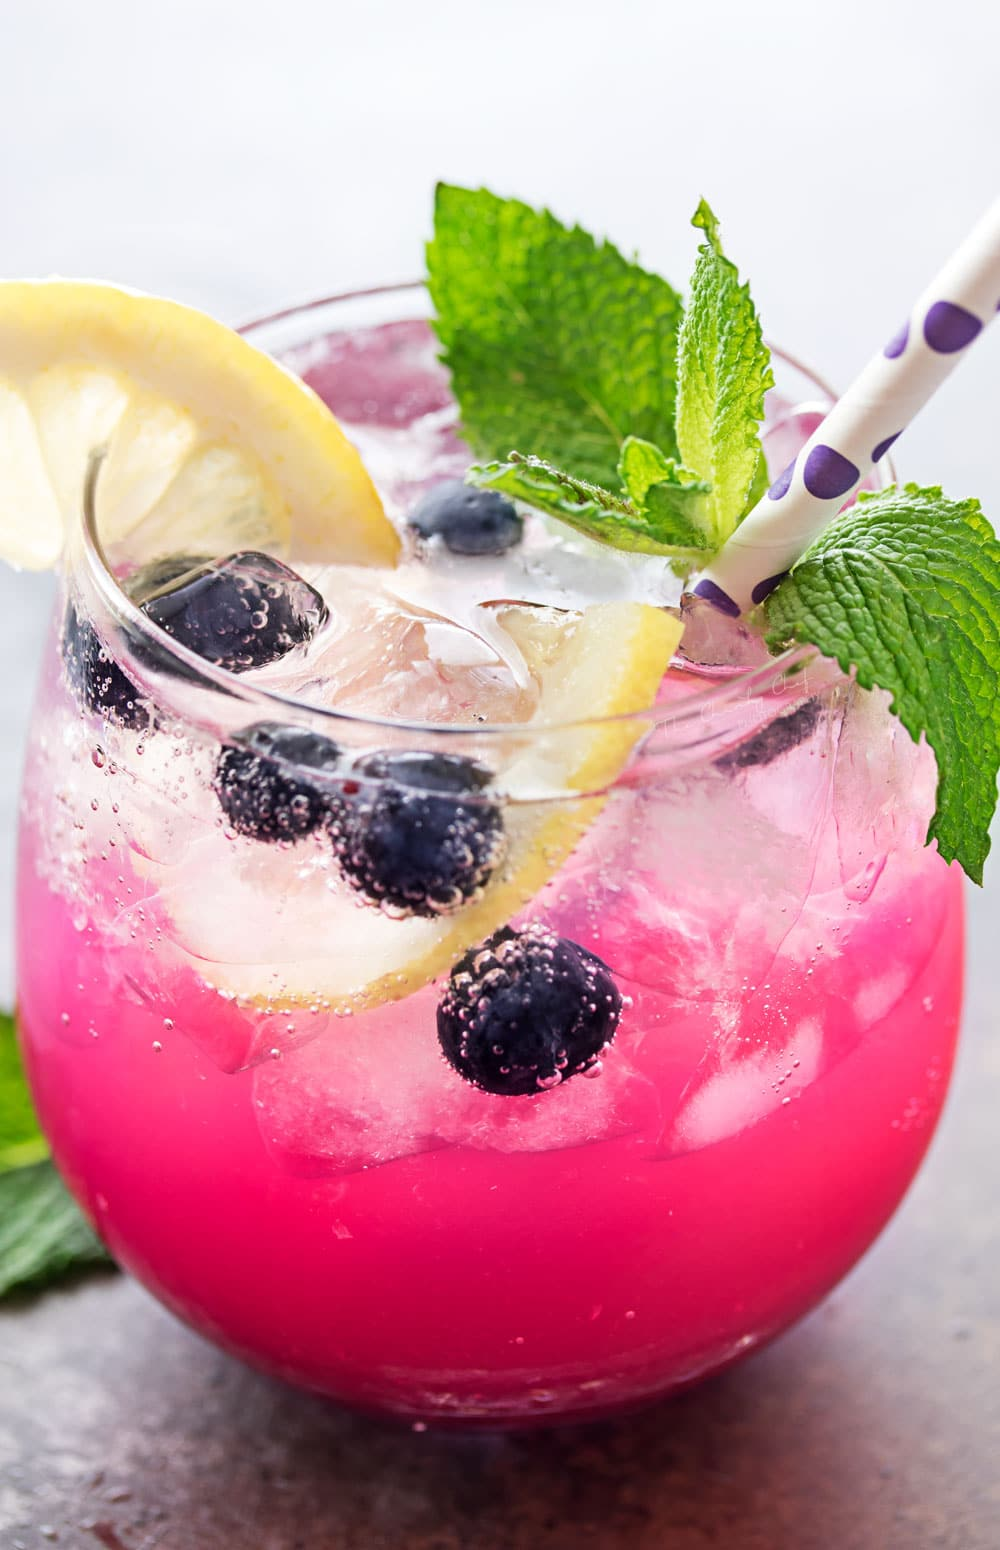 Sparkling Blueberry Lemonade | Cool down this summer with the ultimate blueberry lemonade! Homemade blueberry syrup mixed with refreshing lemonade, topped off with some bubbly club soda! | http://thechunkychef.com